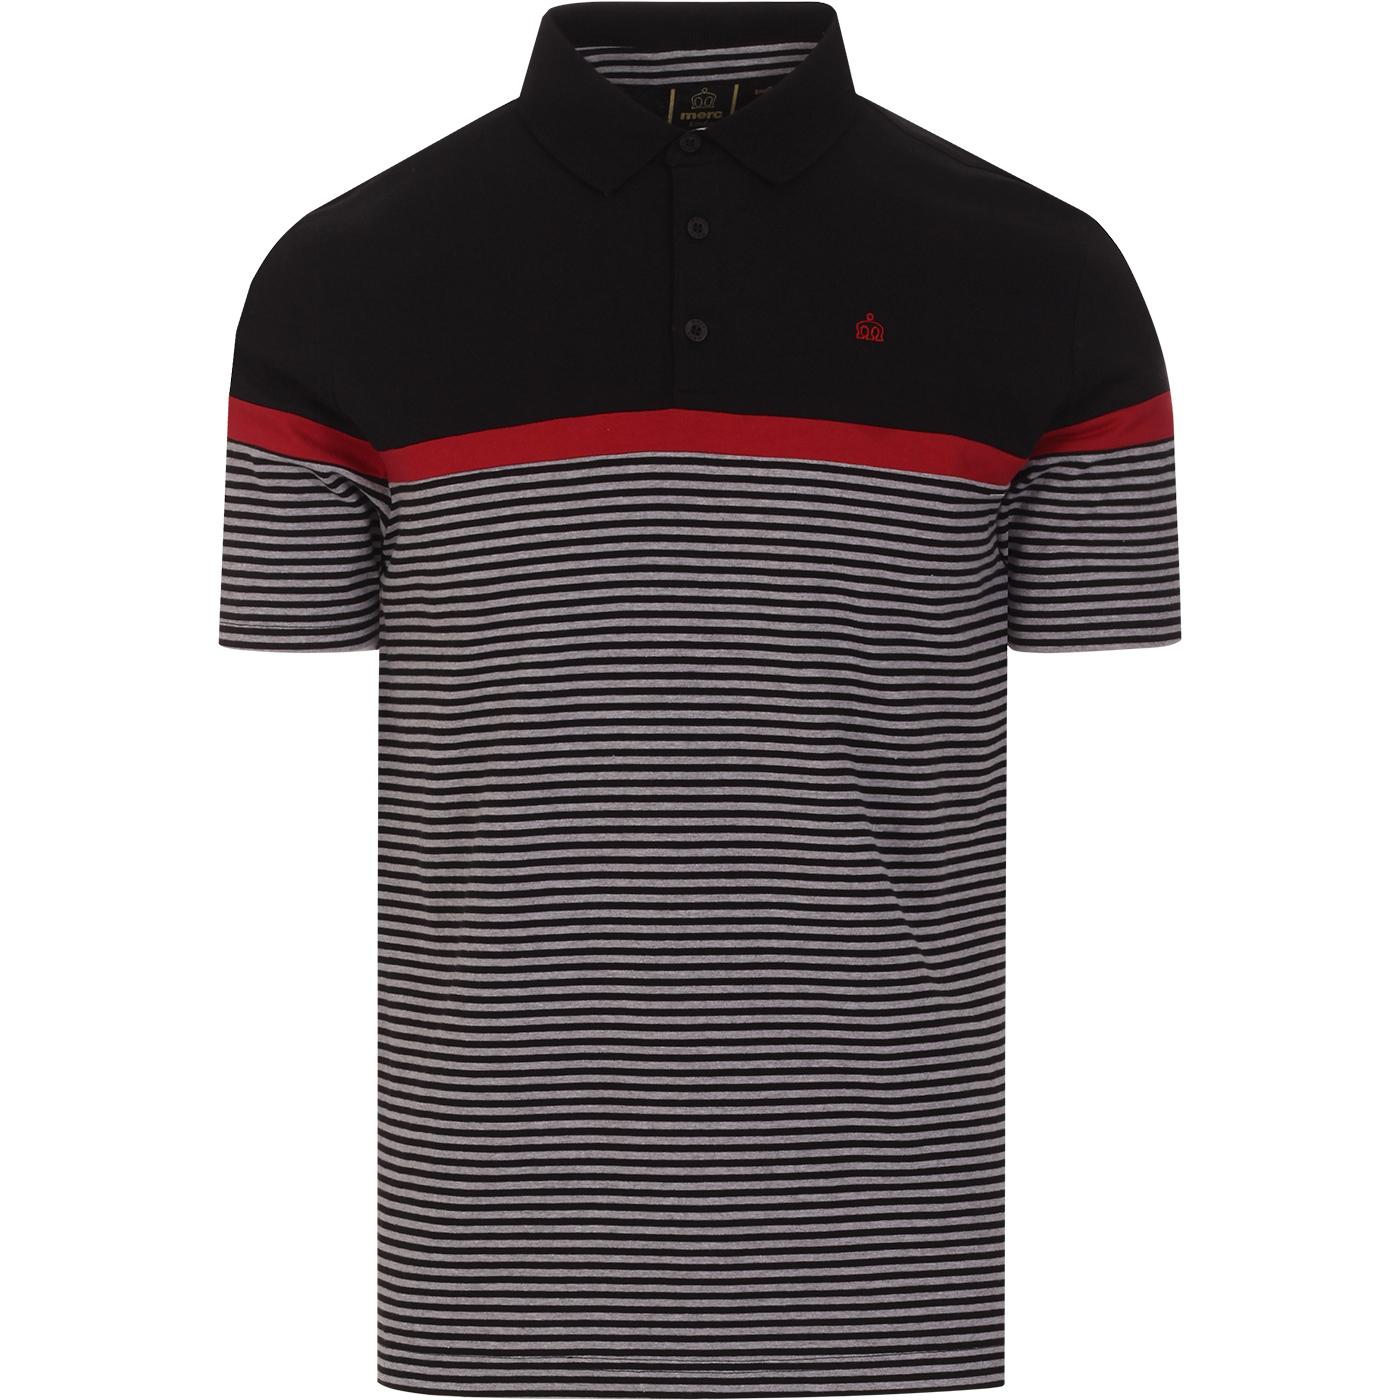 Clarence MERC Retro Mod Stripe Panel Polo Top (B)